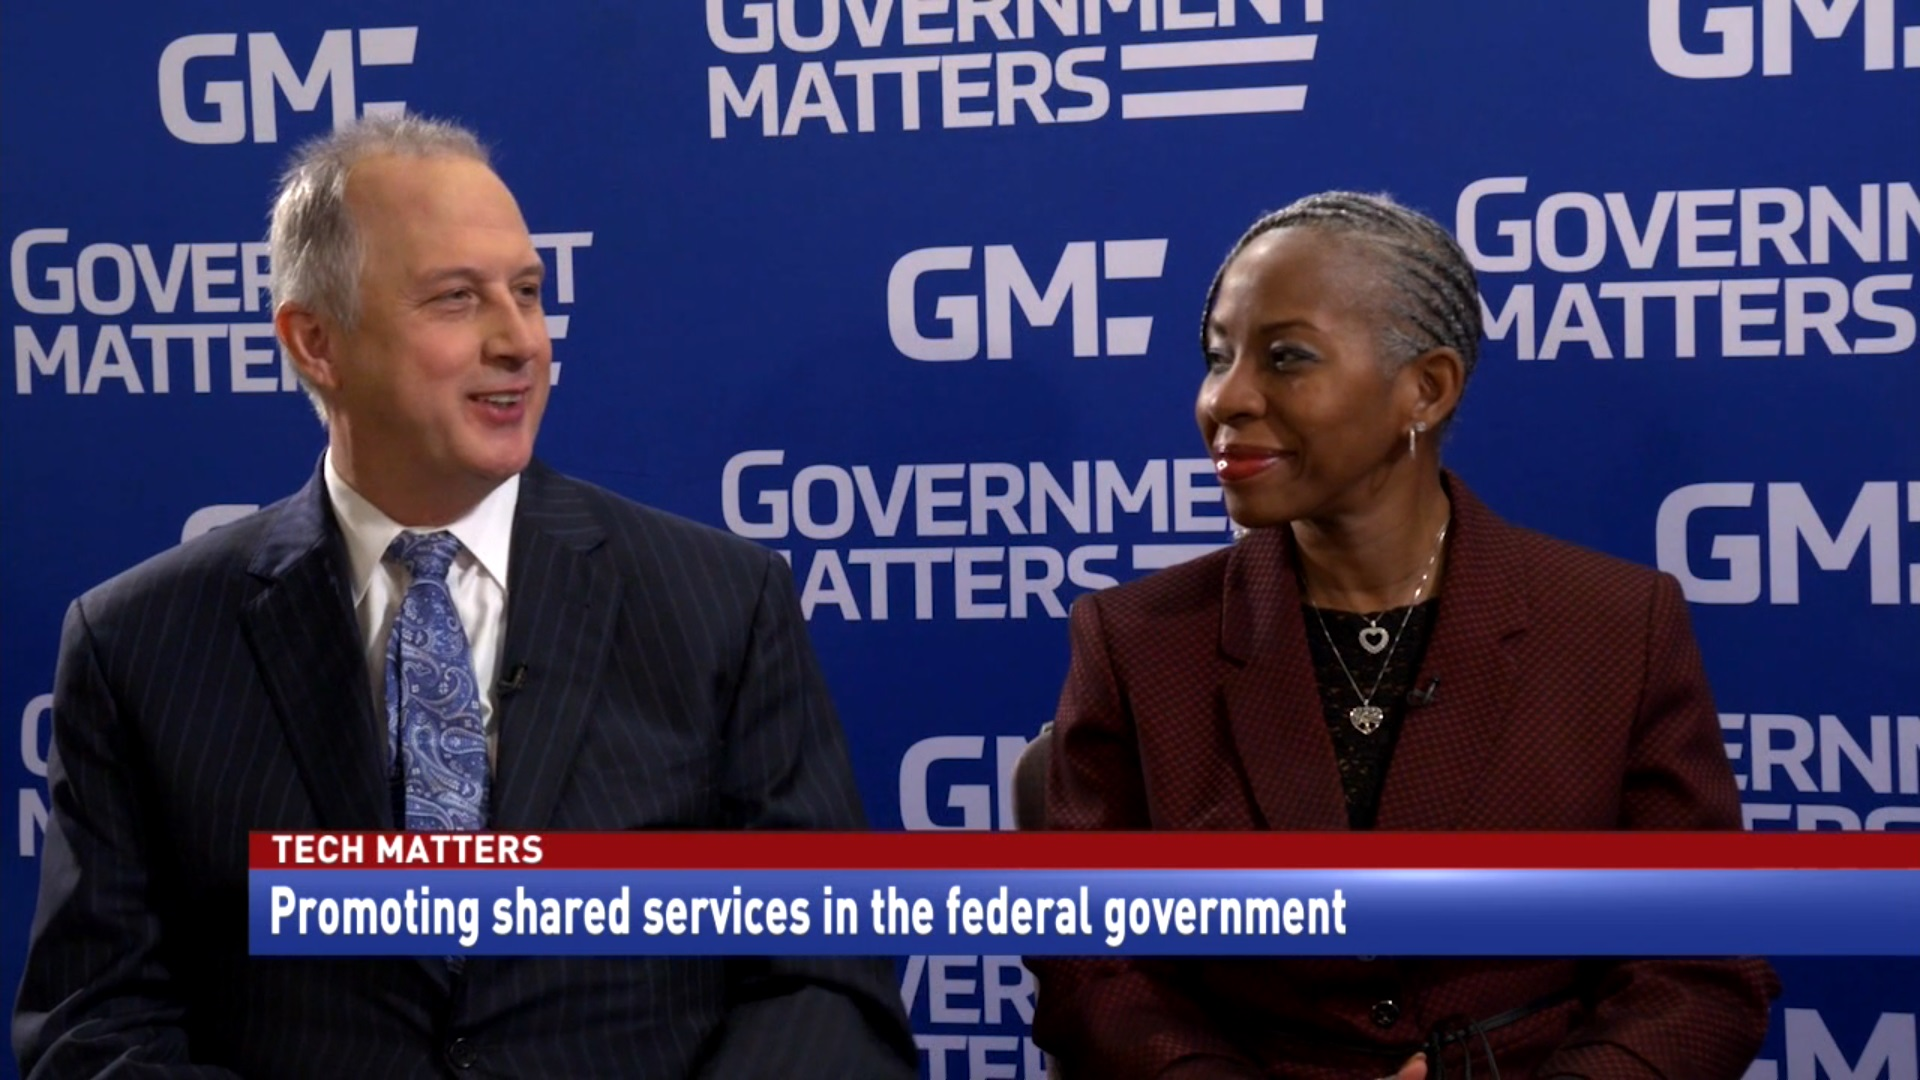 Promoting shared services in the federal government